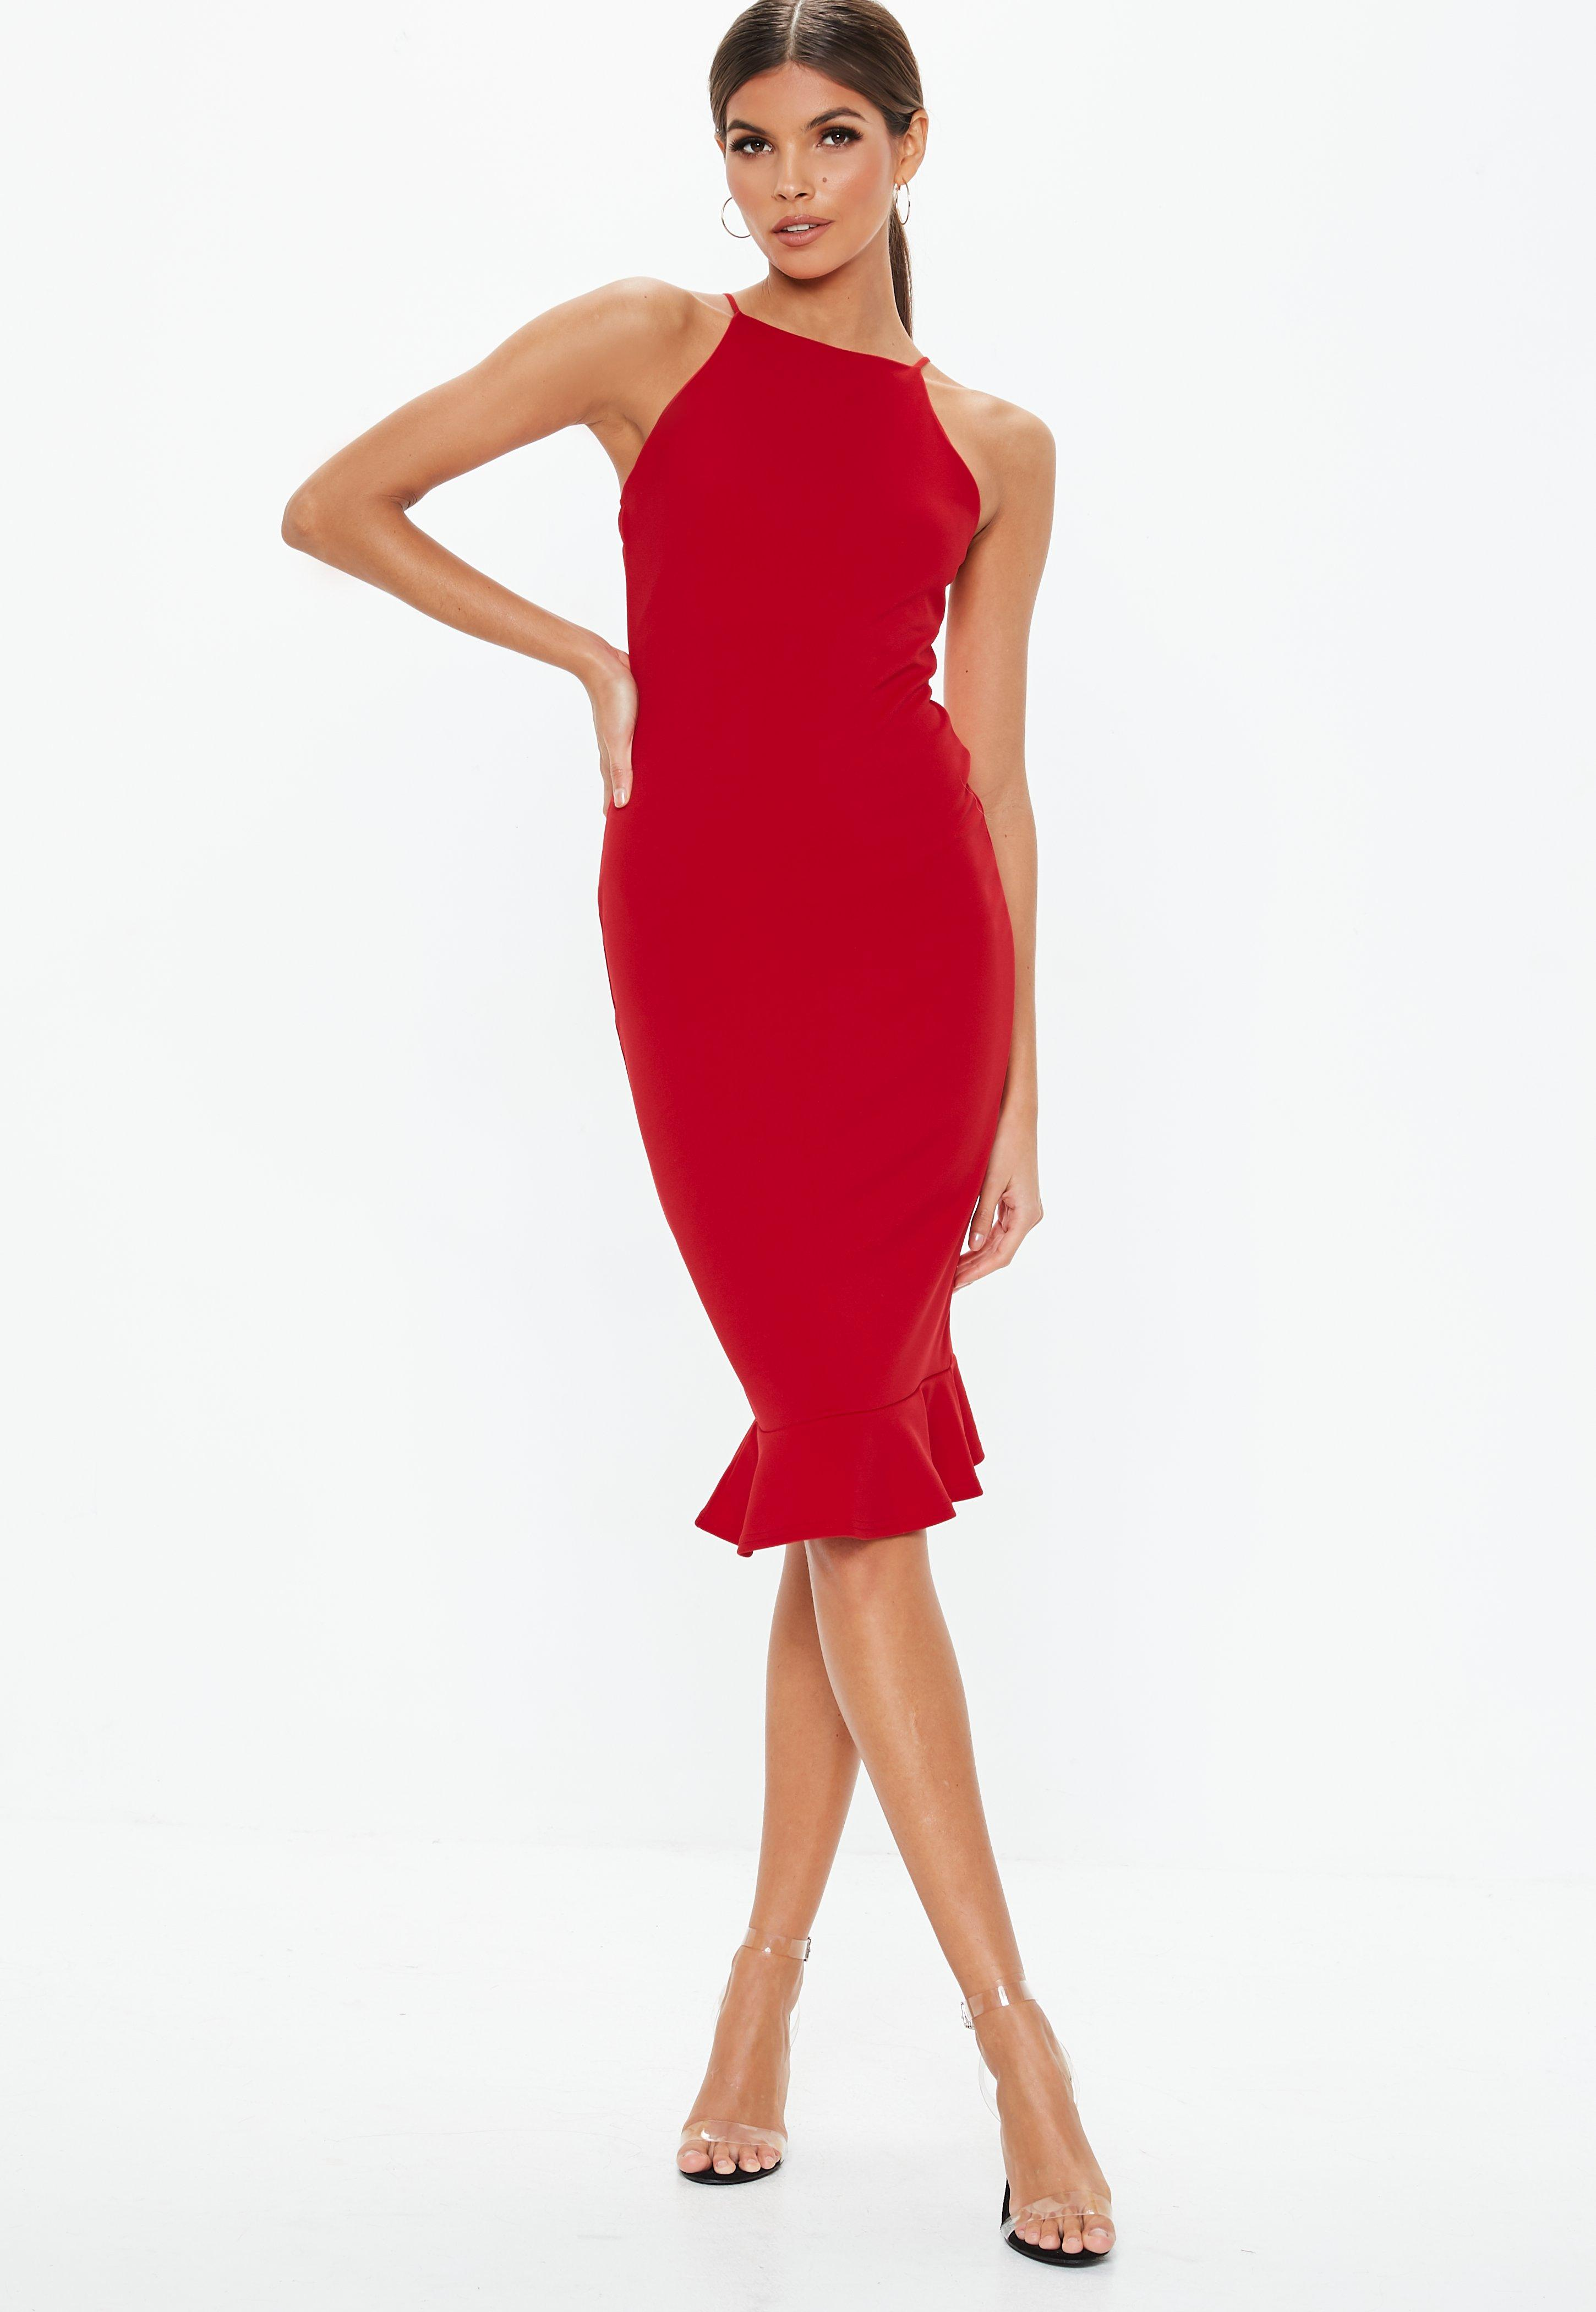 Bodycon Dresses | Tight & Fitted Dresses - Missguided Australia